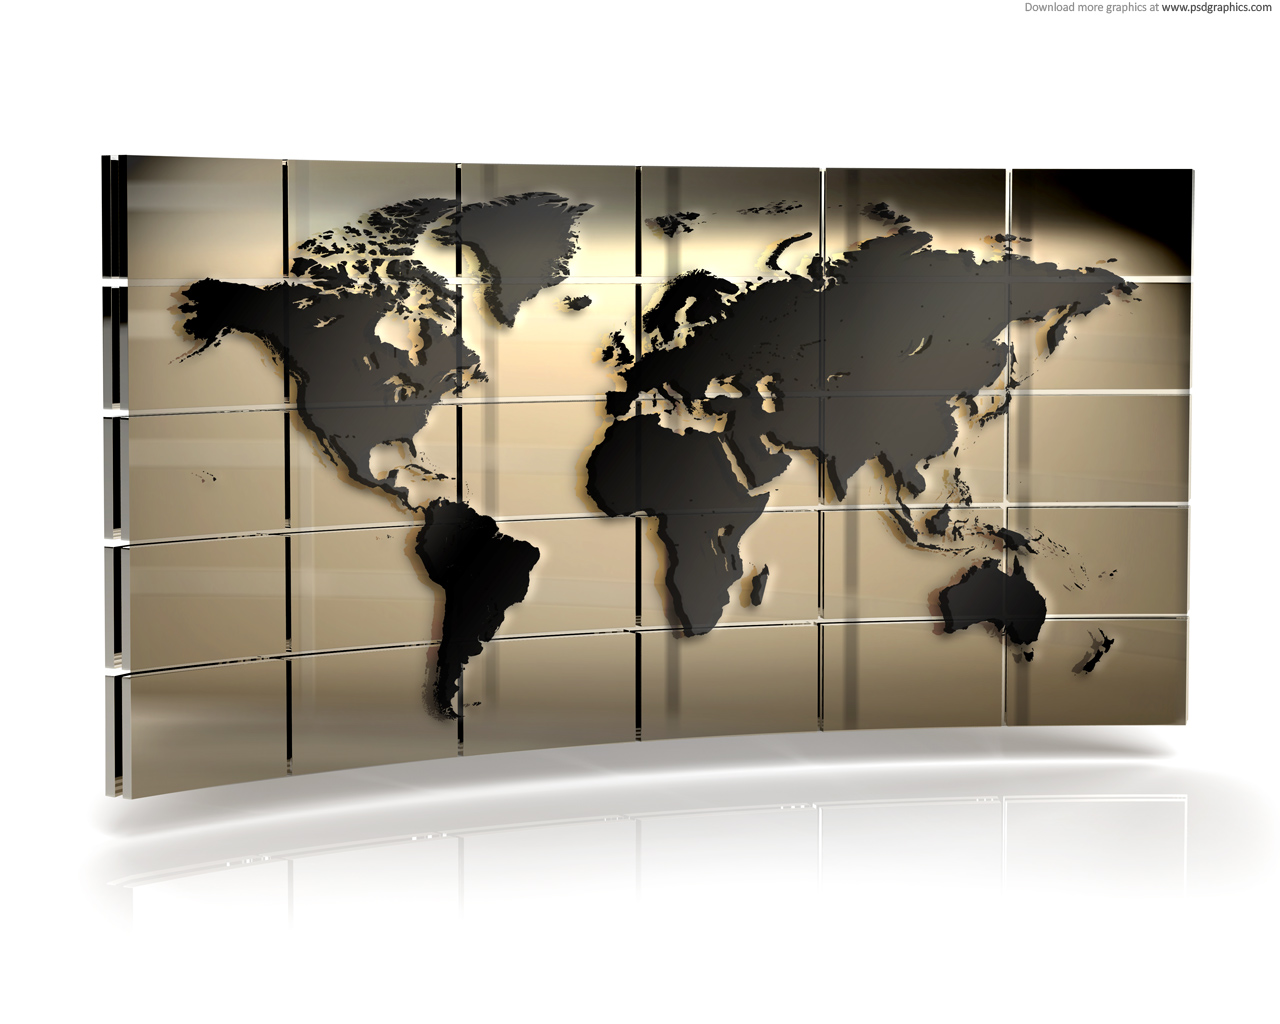 world-map-wall-background.jpg